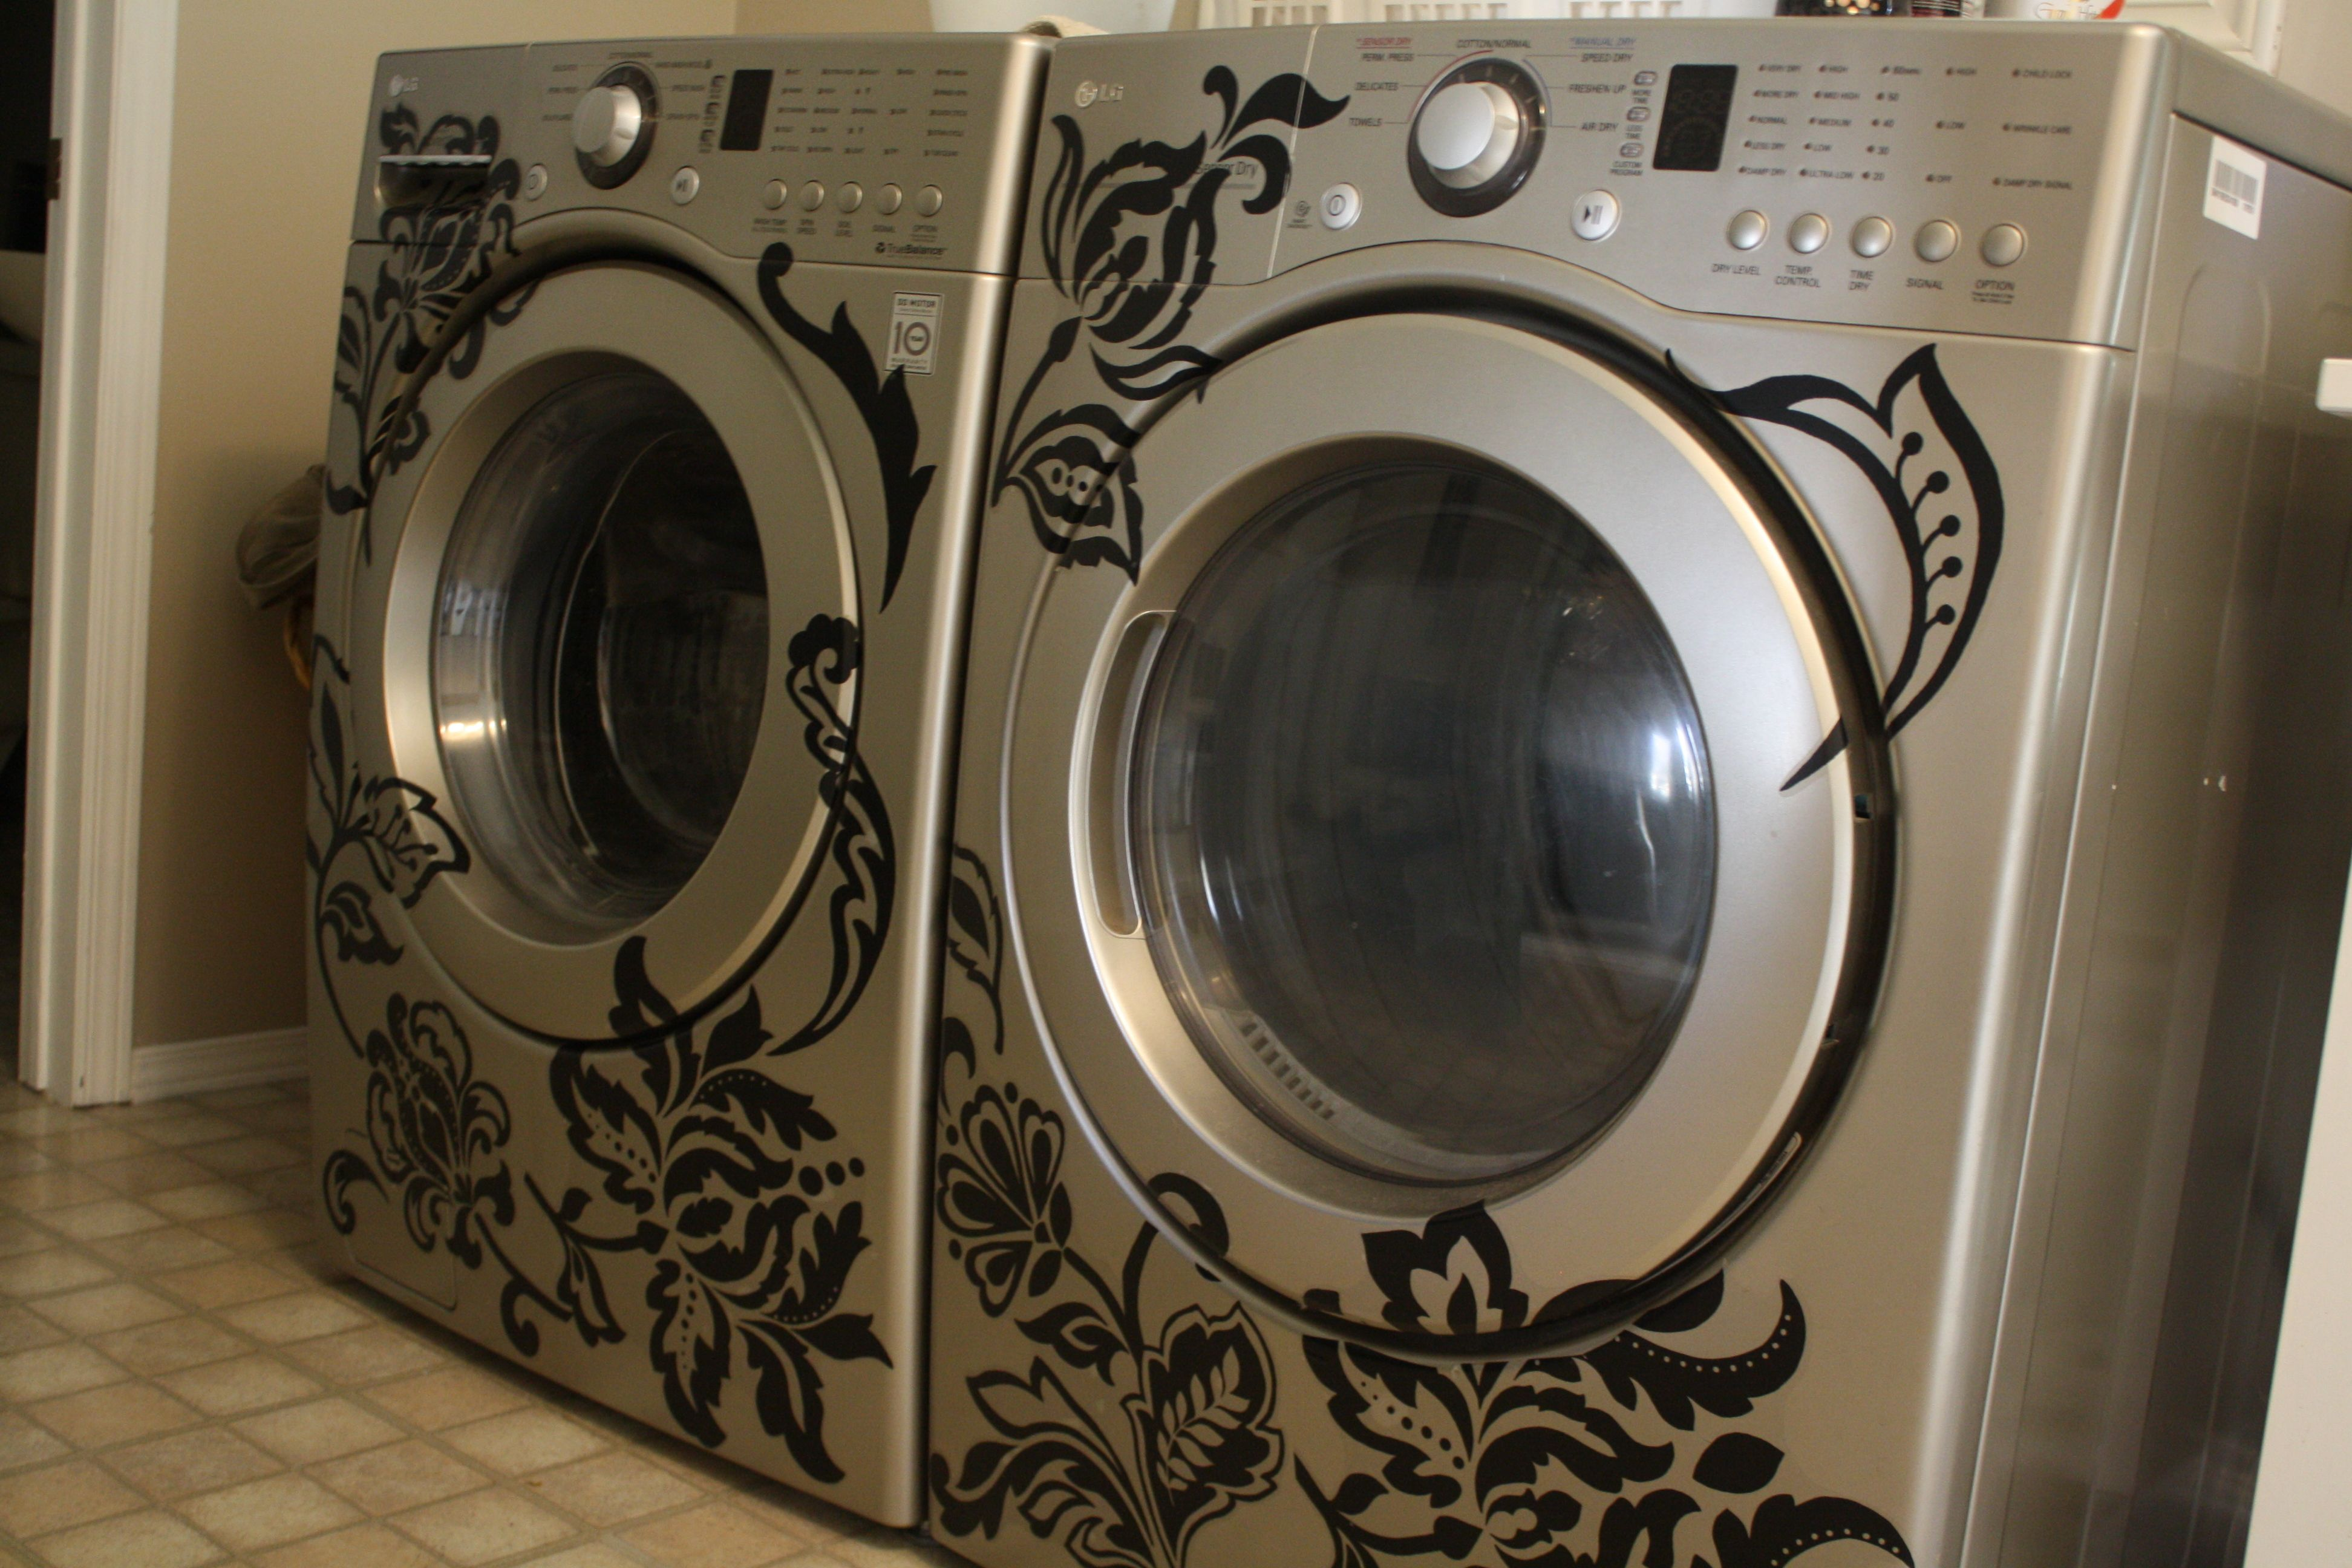 Laundry Room Washer And Dryer With Vinyl Wall Decal From Walmart